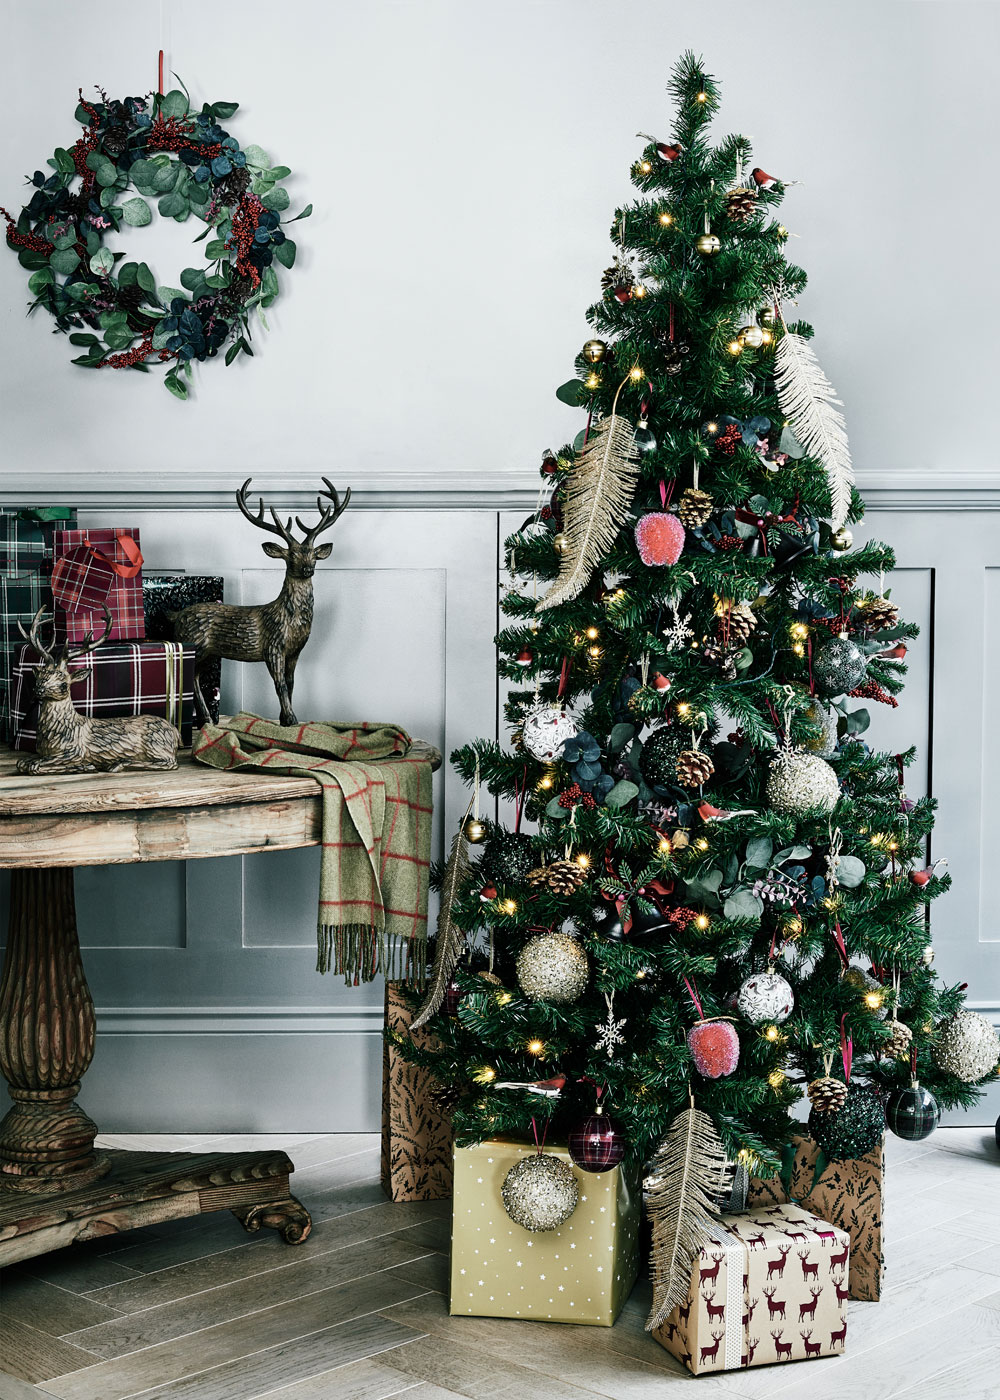 Looking for budget Christmas decorations to deck your home out this festive season? Look no further. In today's post, I'm sharing seven of the best shops on the high street to buy cheap Christmas decorations, from tree decorations, to Christmas Eve boxes, to Christmas dinnerware. Click through for some last minute simple holiday decorating ideas from Sainsbury's #budgetchristmas #cheapchristmas #christmasdecor